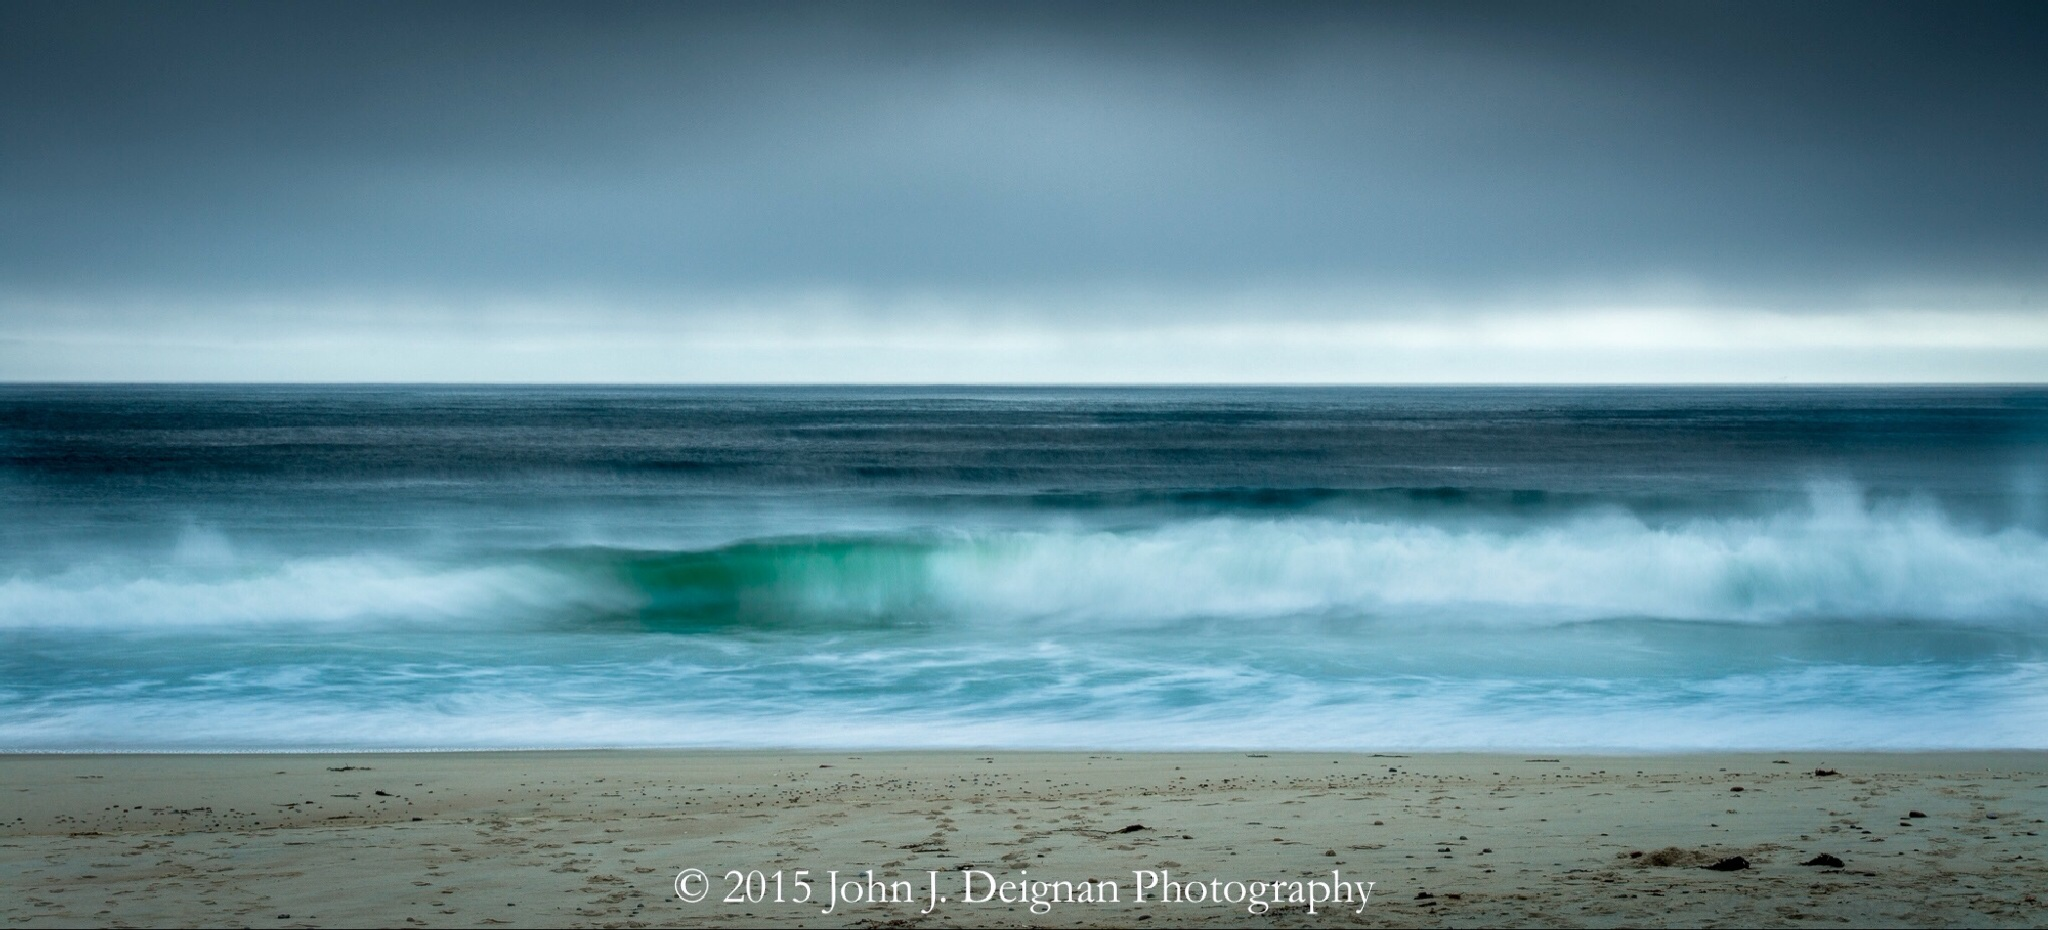 Nauset! by JohnJDeignanPhotography